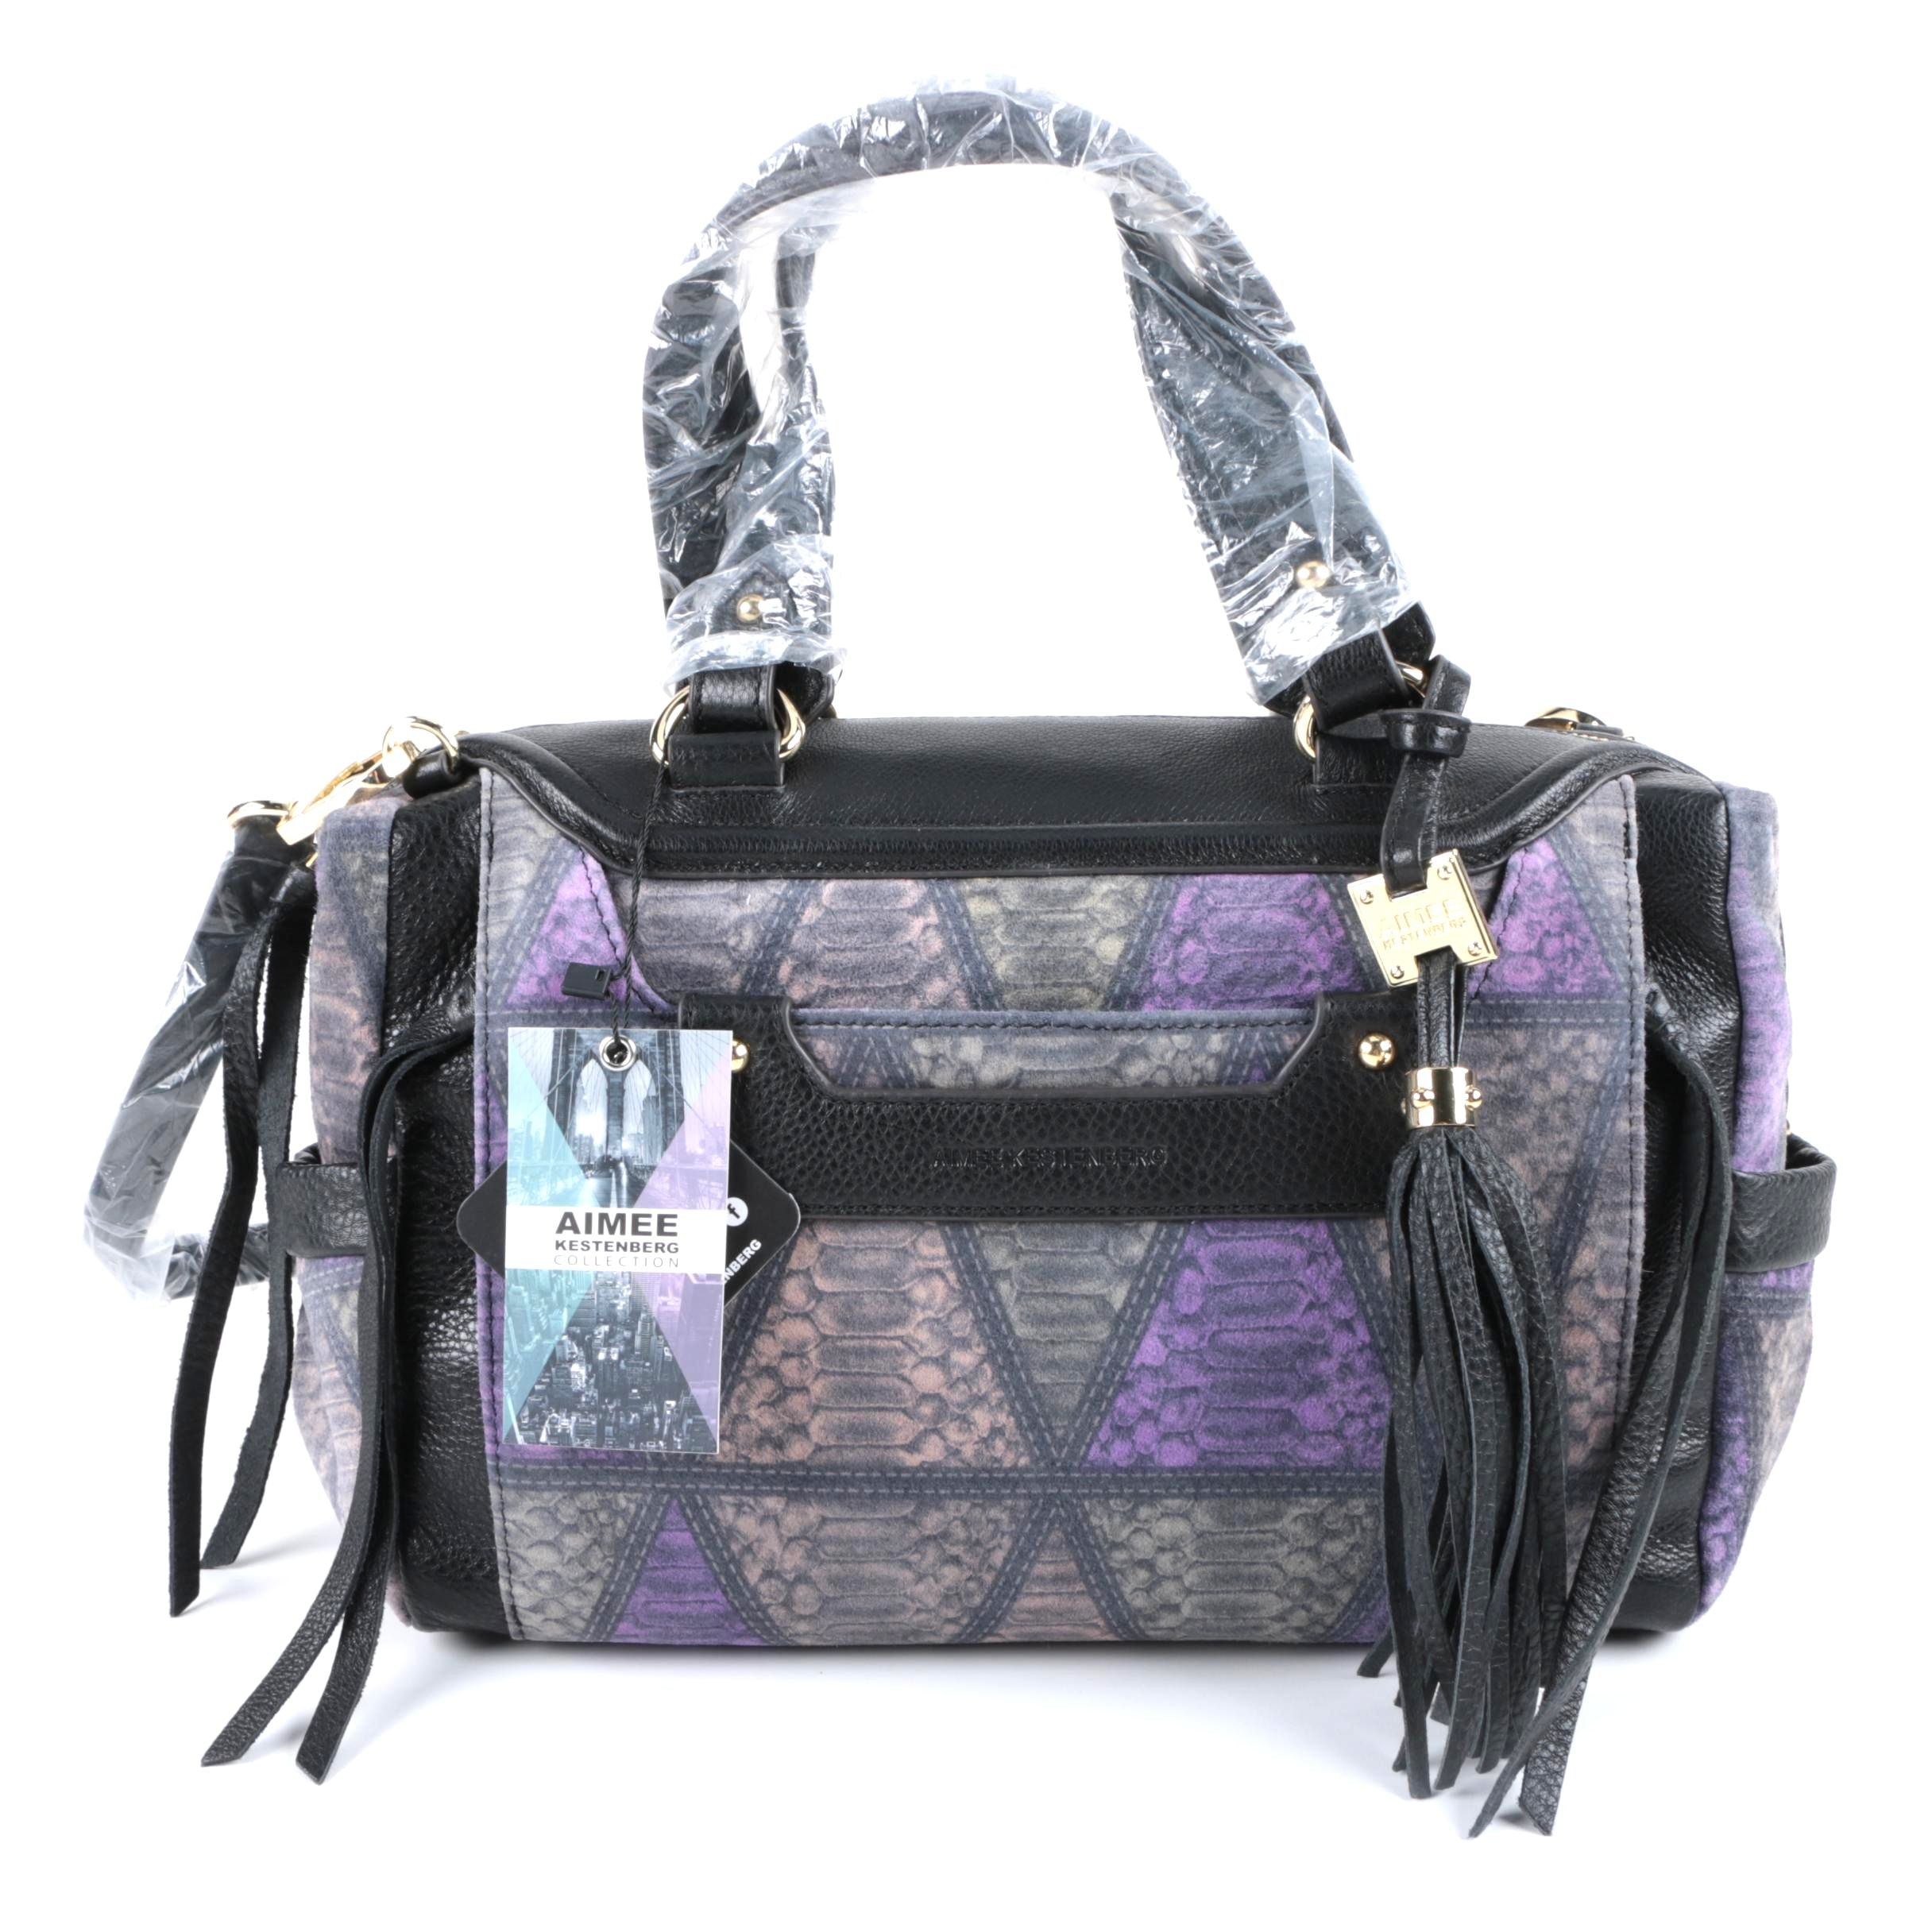 Aimee Kestenberg Printed Leather Handbag